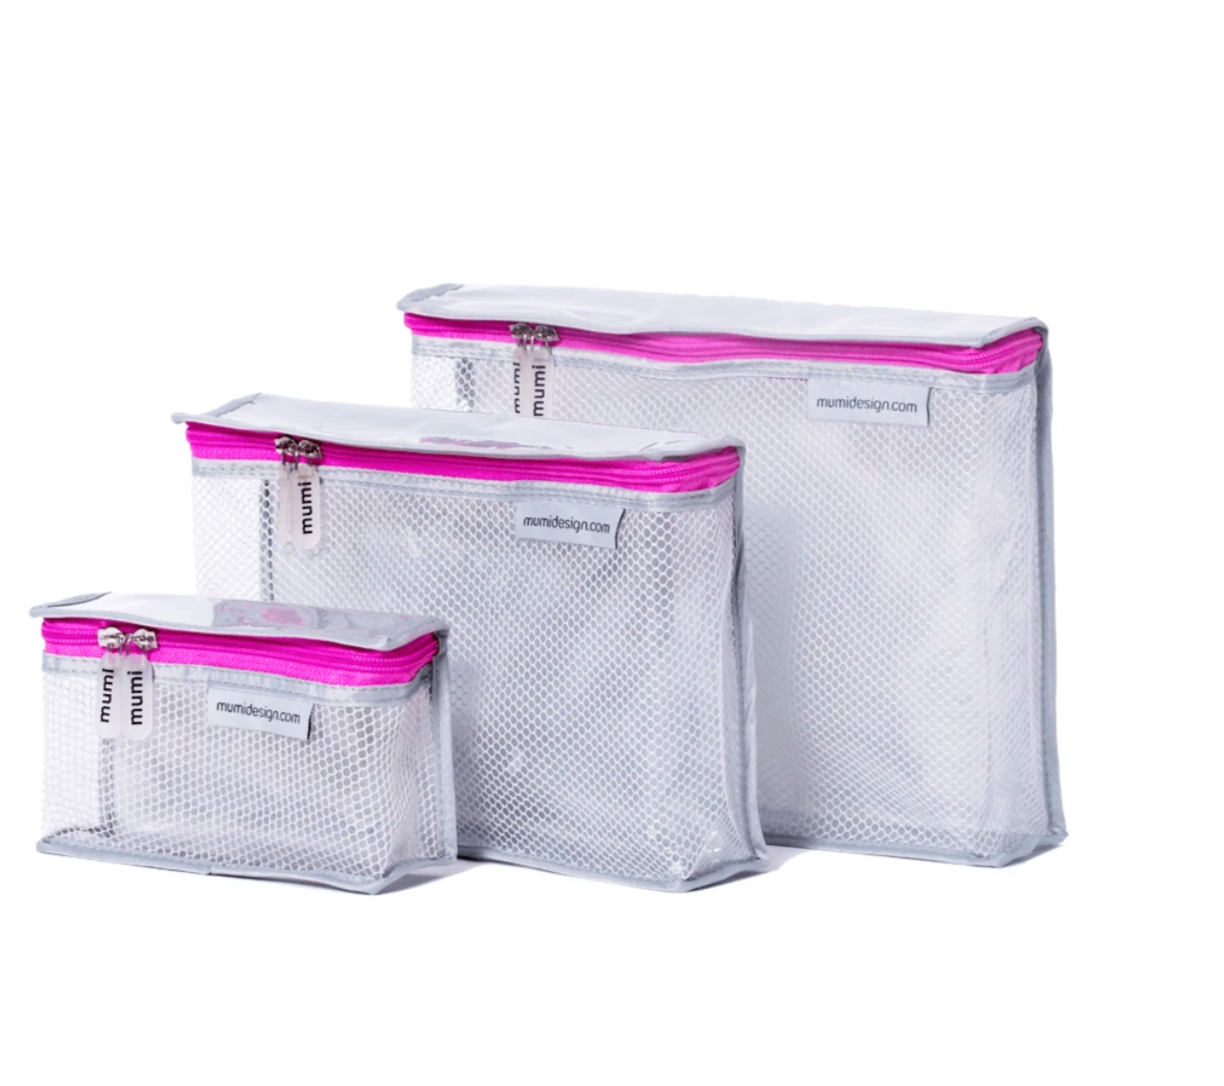 Pink Toiletry Cubes